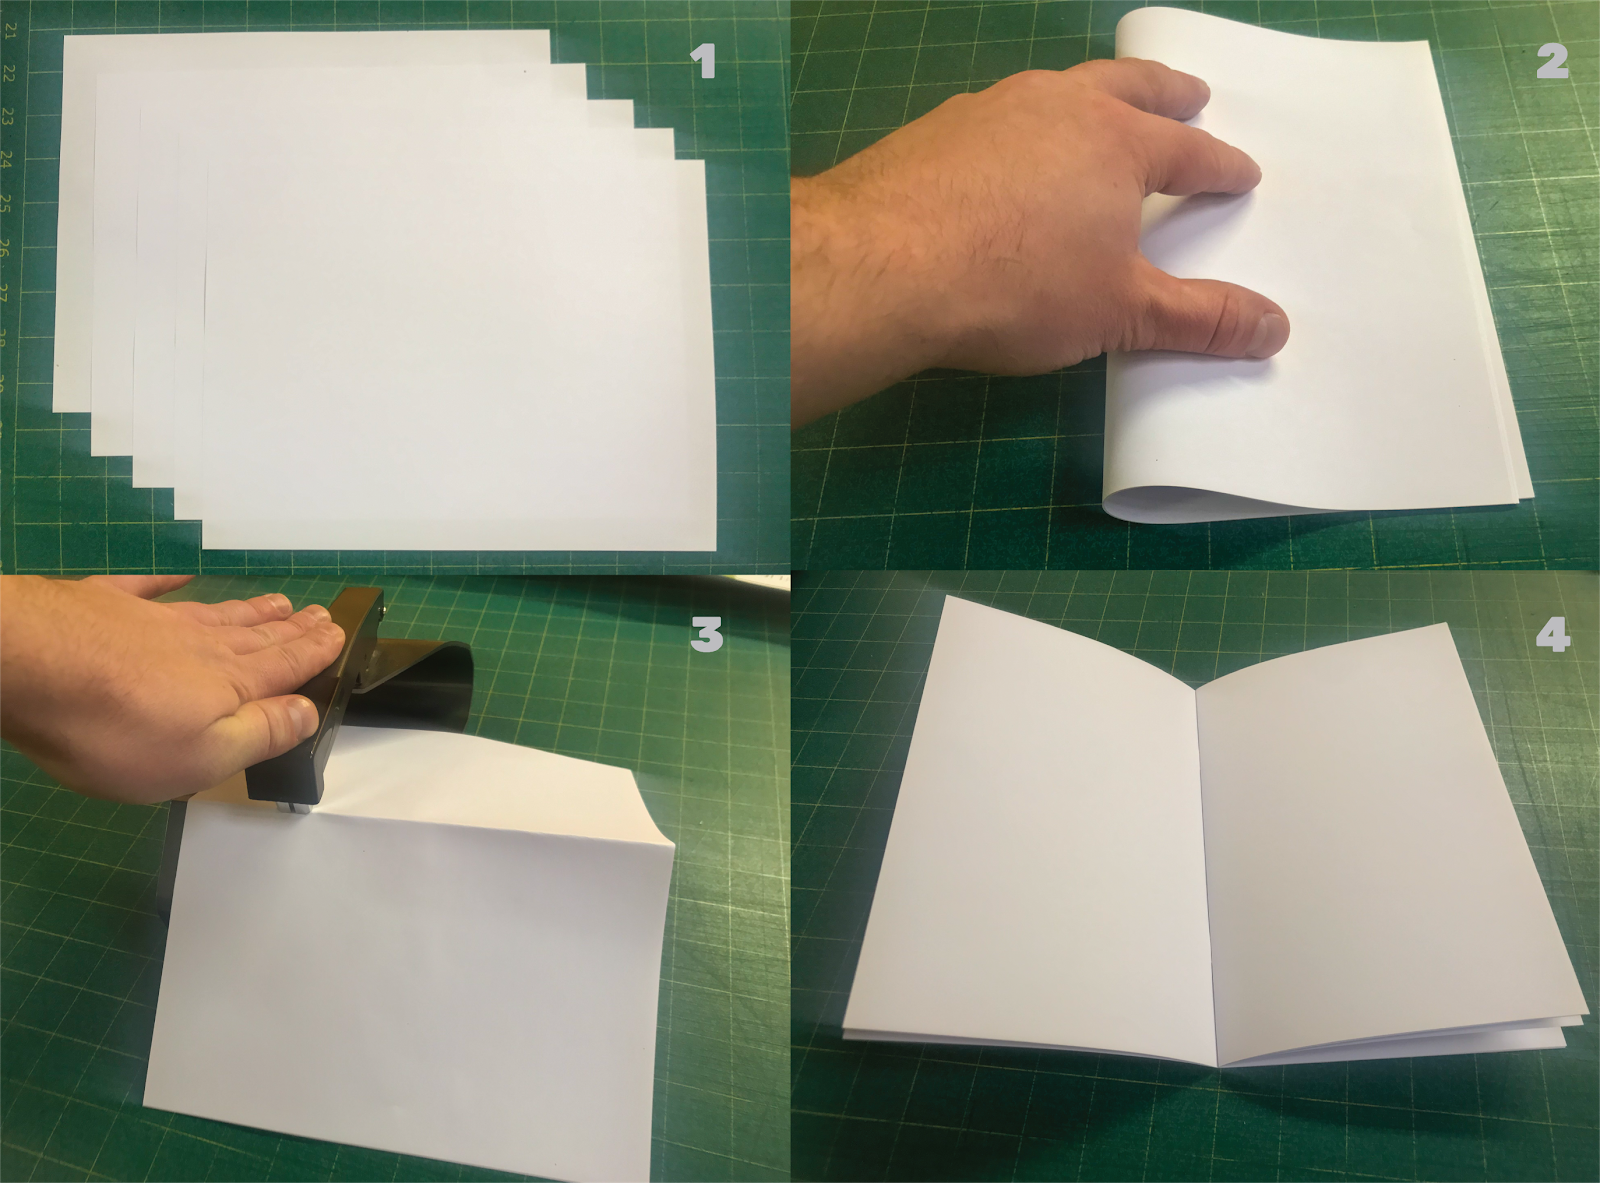 Image collage depicting how a saddle stitch booklet is made.